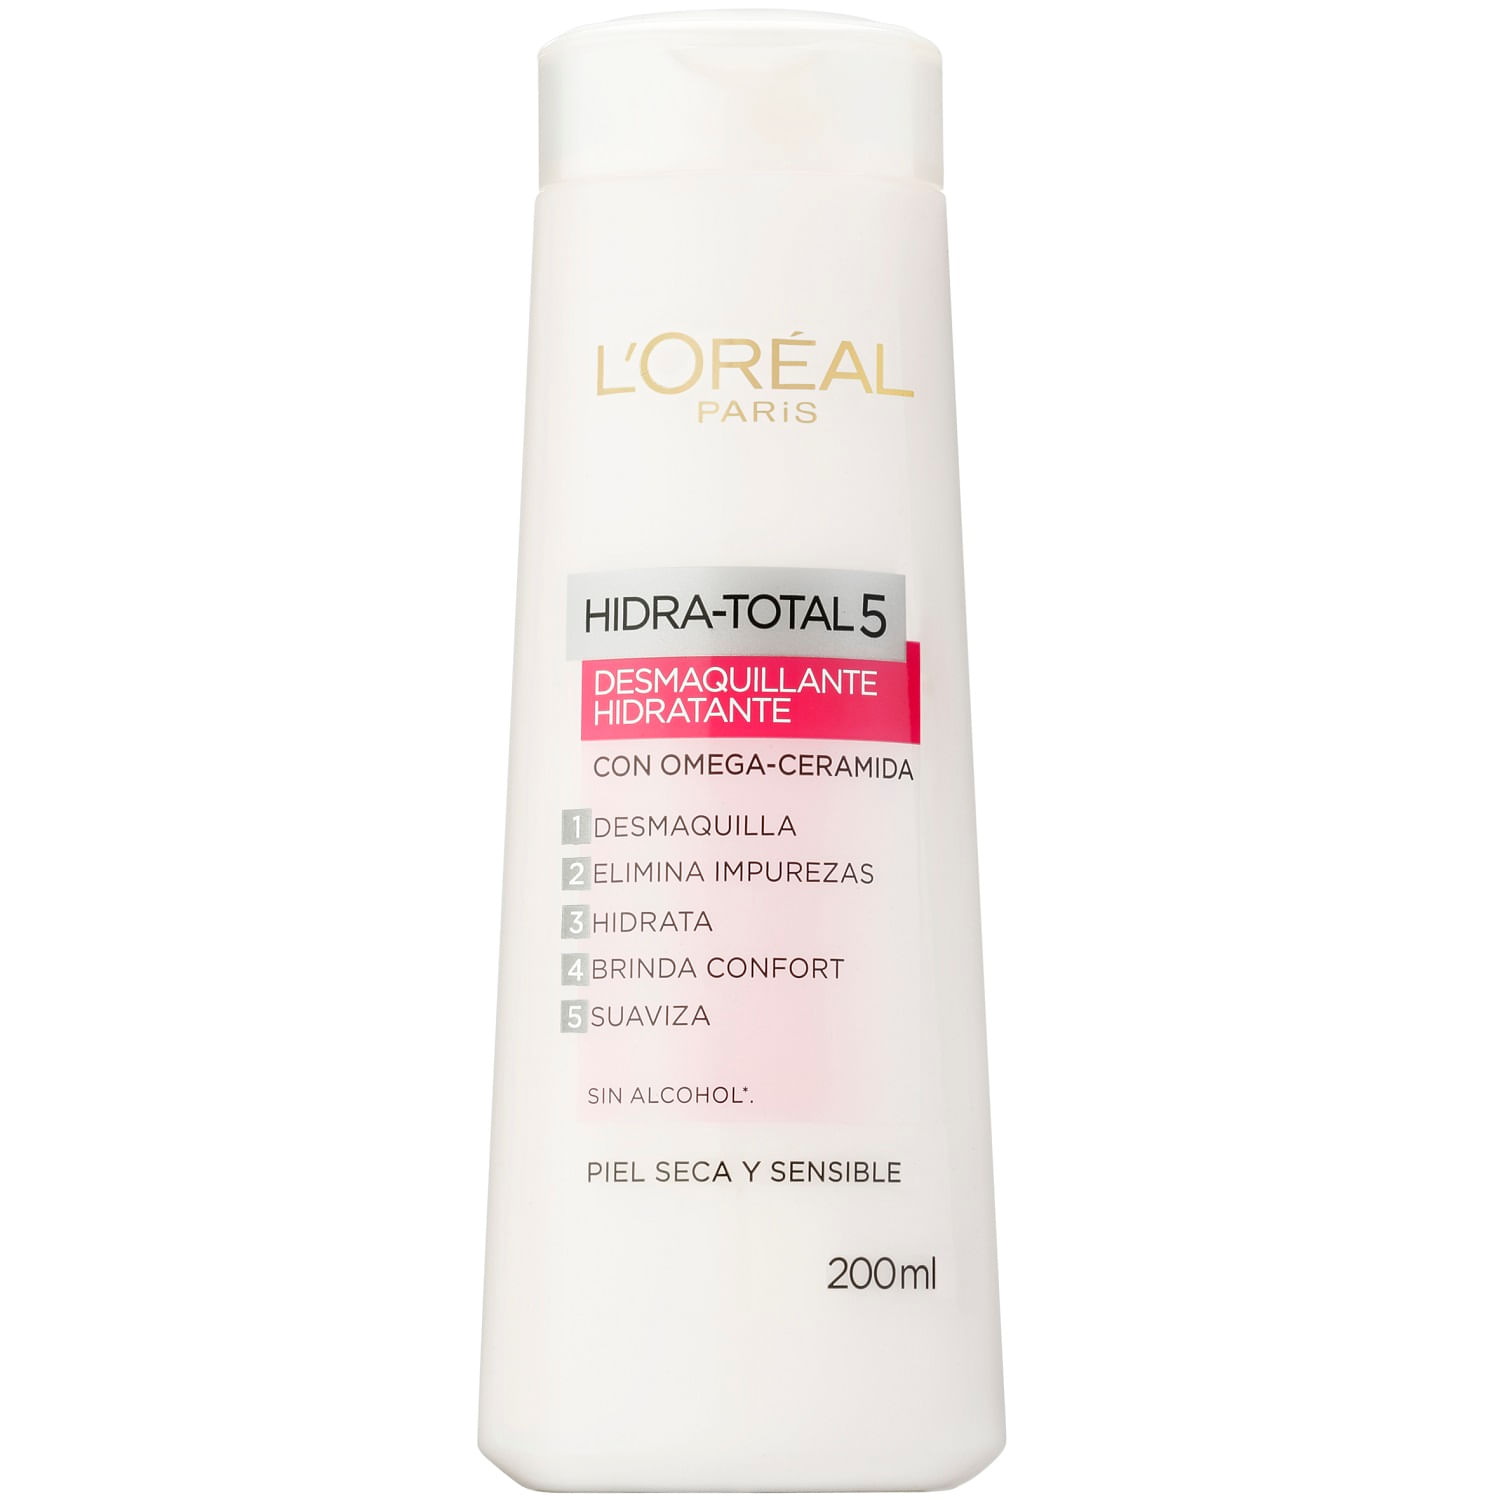 Desmaquillante Hidra-Total 5 Piel Seca y Sensible 200 ml